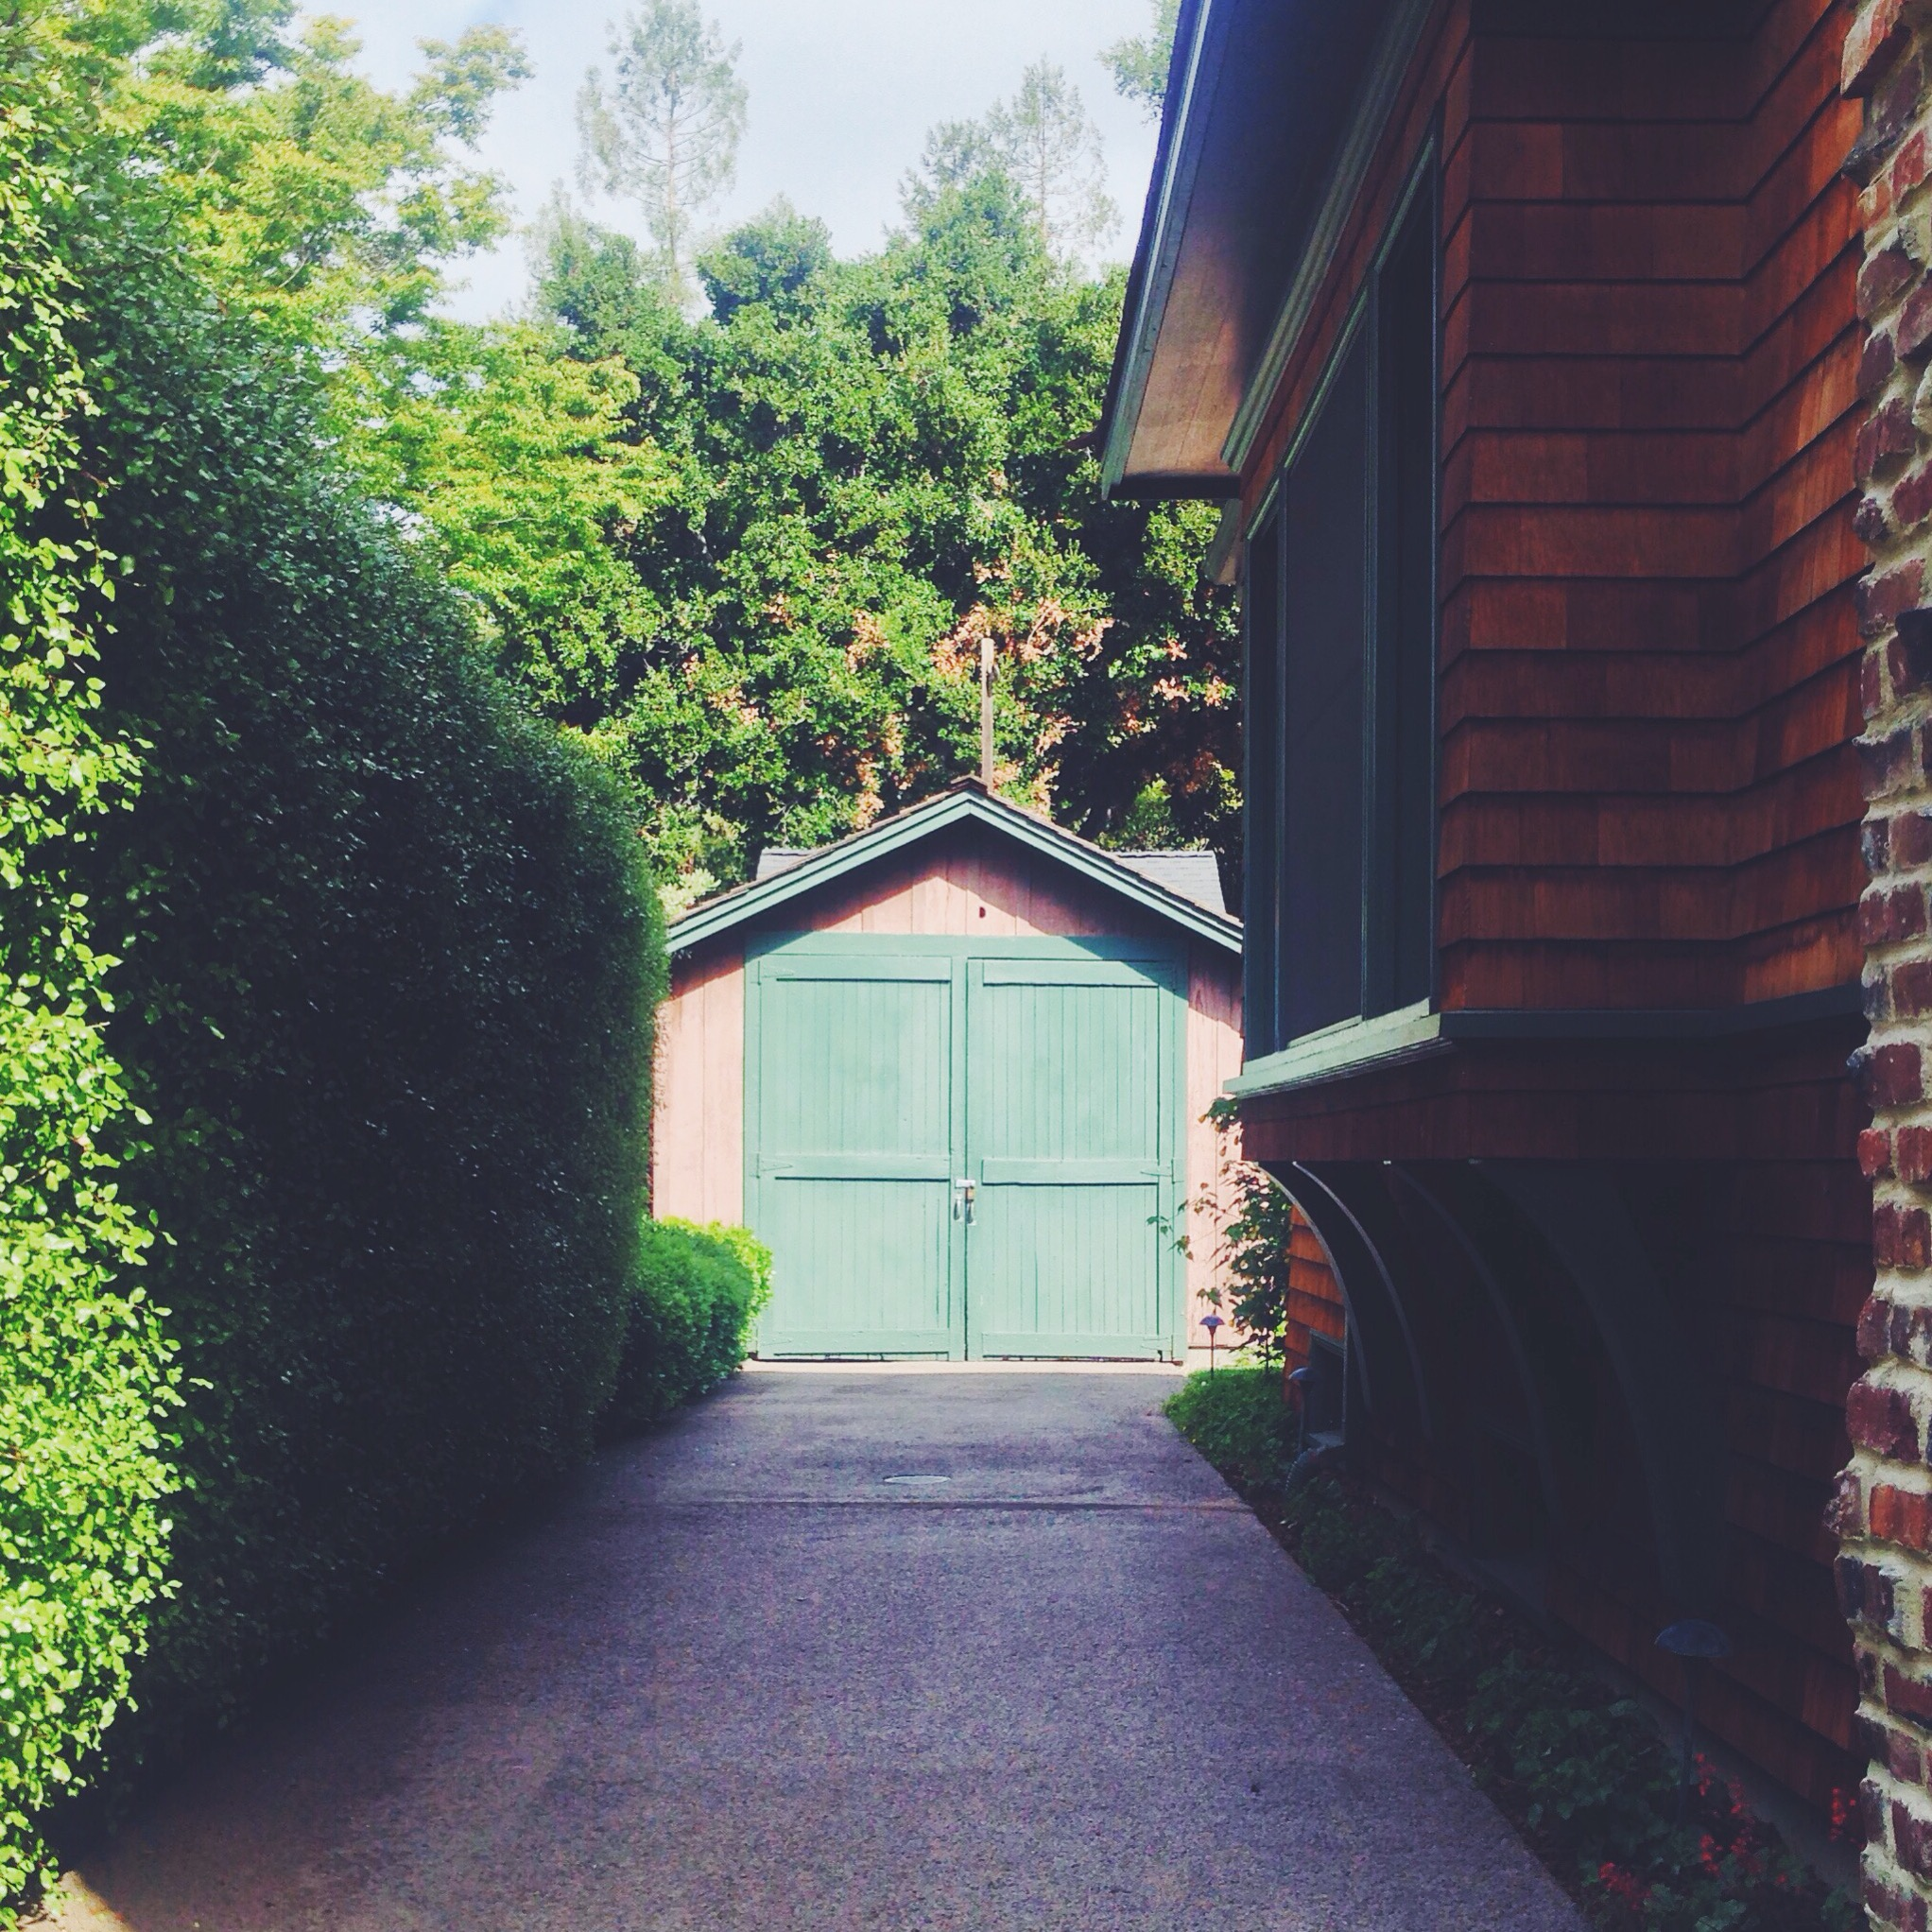 Hewlett-Packard Garage, Palo Alto